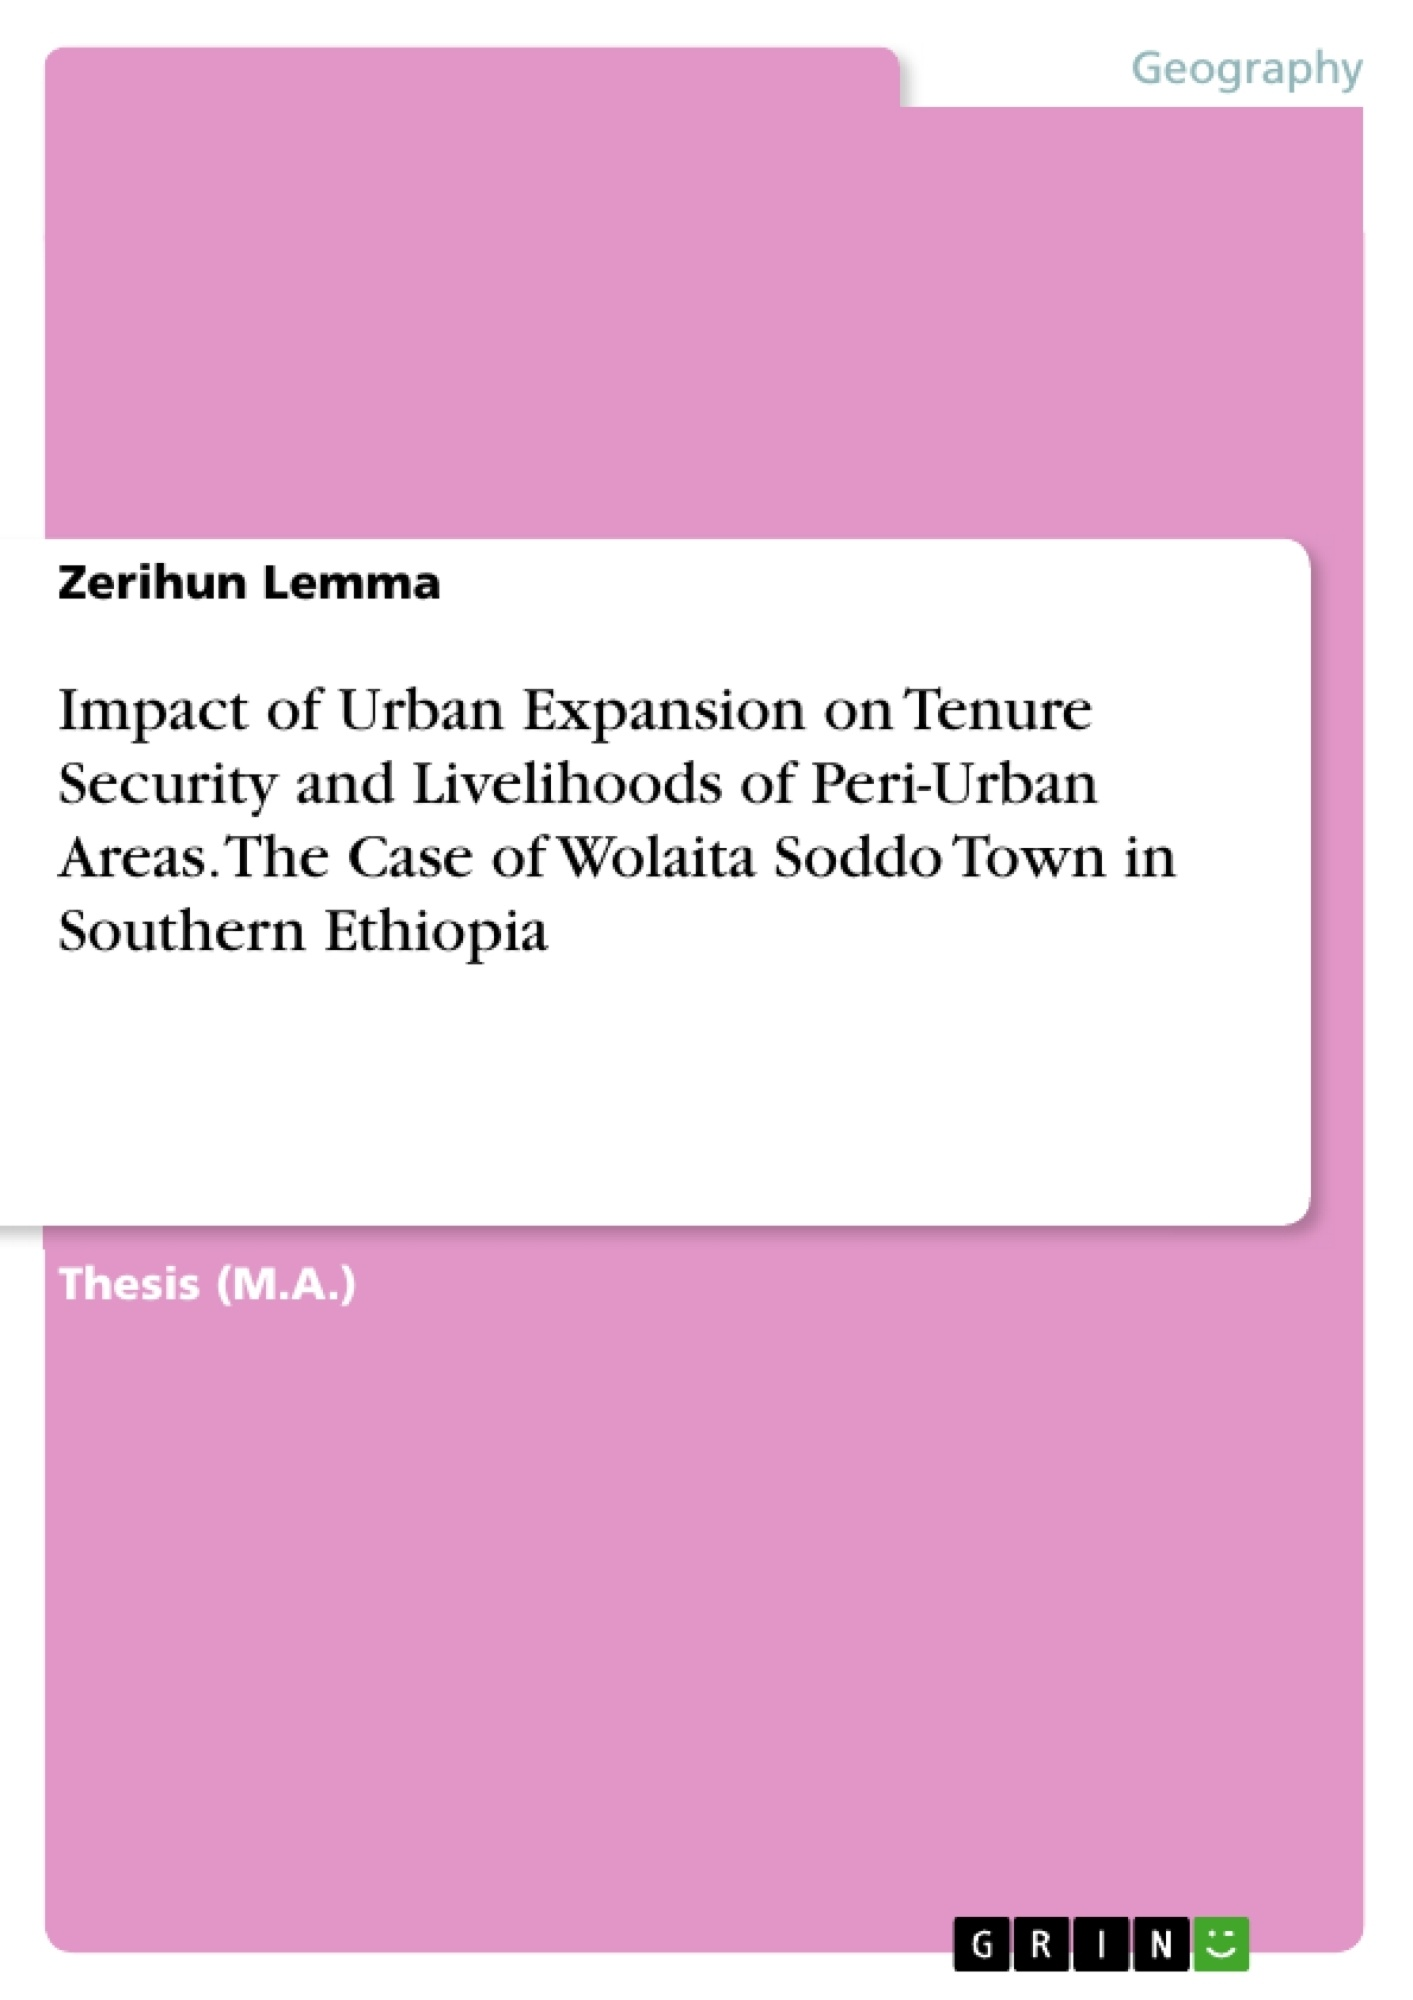 Title: Impact of Urban Expansion on Tenure Security and Livelihoods of Peri-Urban Areas. The Case of Wolaita Soddo Town in Southern Ethiopia